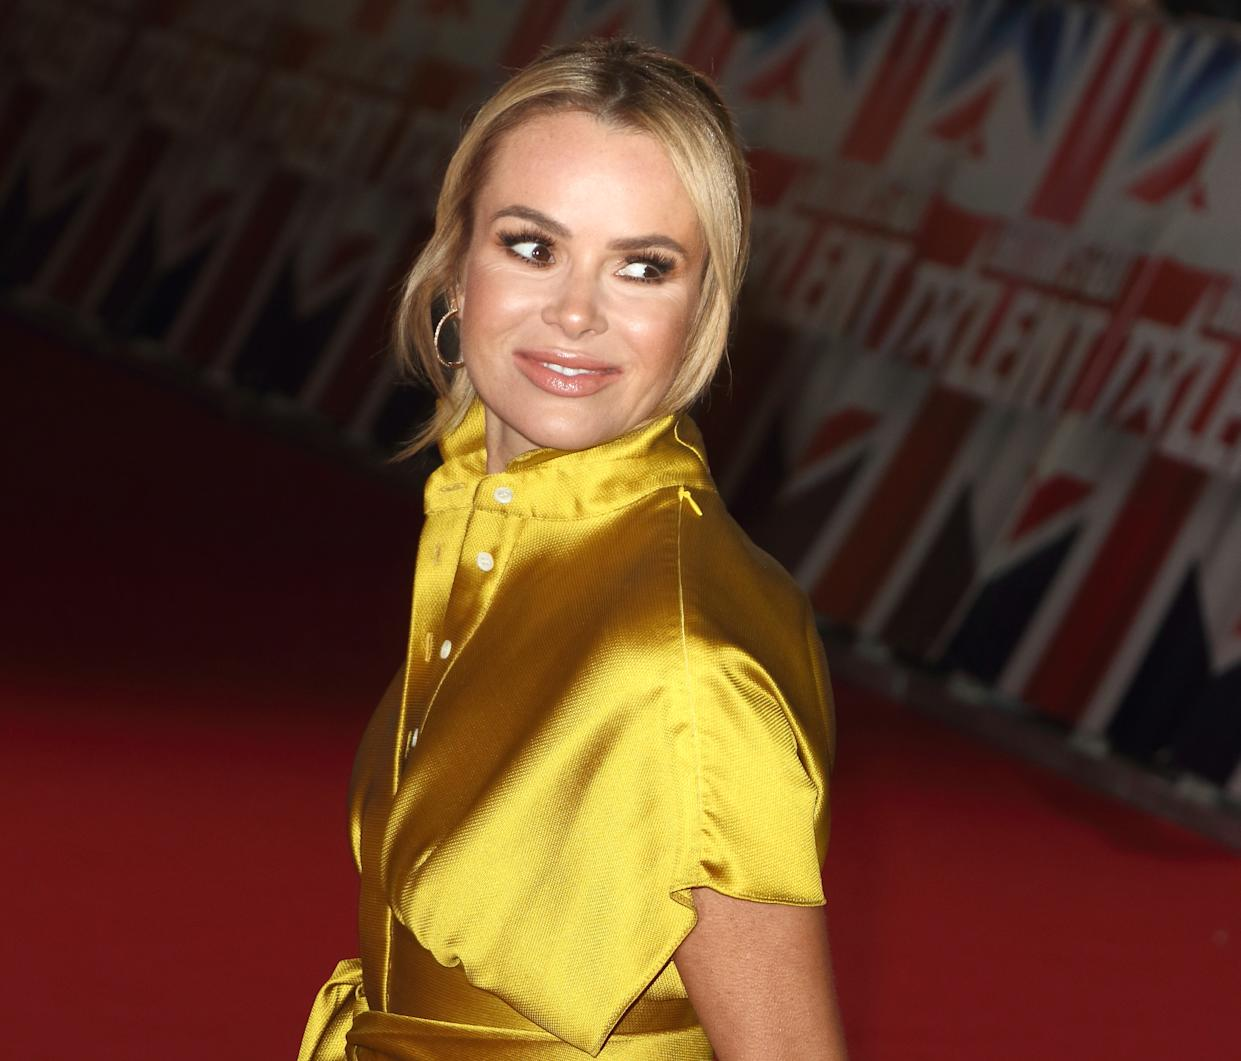 LONDON, -, UNITED KINGDOM - 2019/01/20: Judge Amanda Holden seen at the London Palladium for the Auditions of Britain's Got Talent TV Show - Series 13. (Photo by Keith Mayhew/SOPA Images/LightRocket via Getty Images)